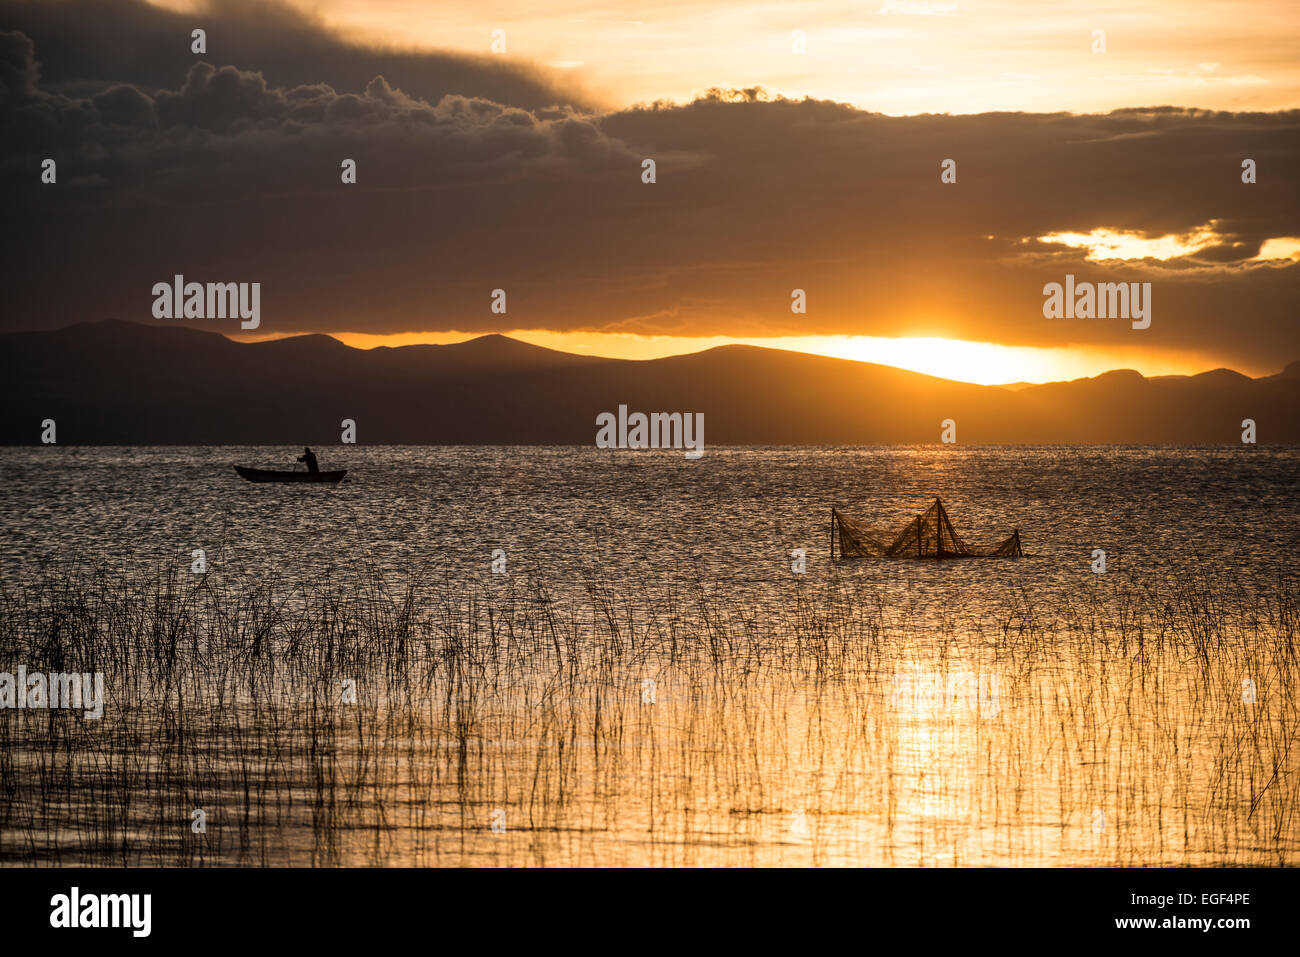 Coucher de soleil sur le lac Titicaca, le Lac Titicaca, Copacabana, Bolivie Photo Stock